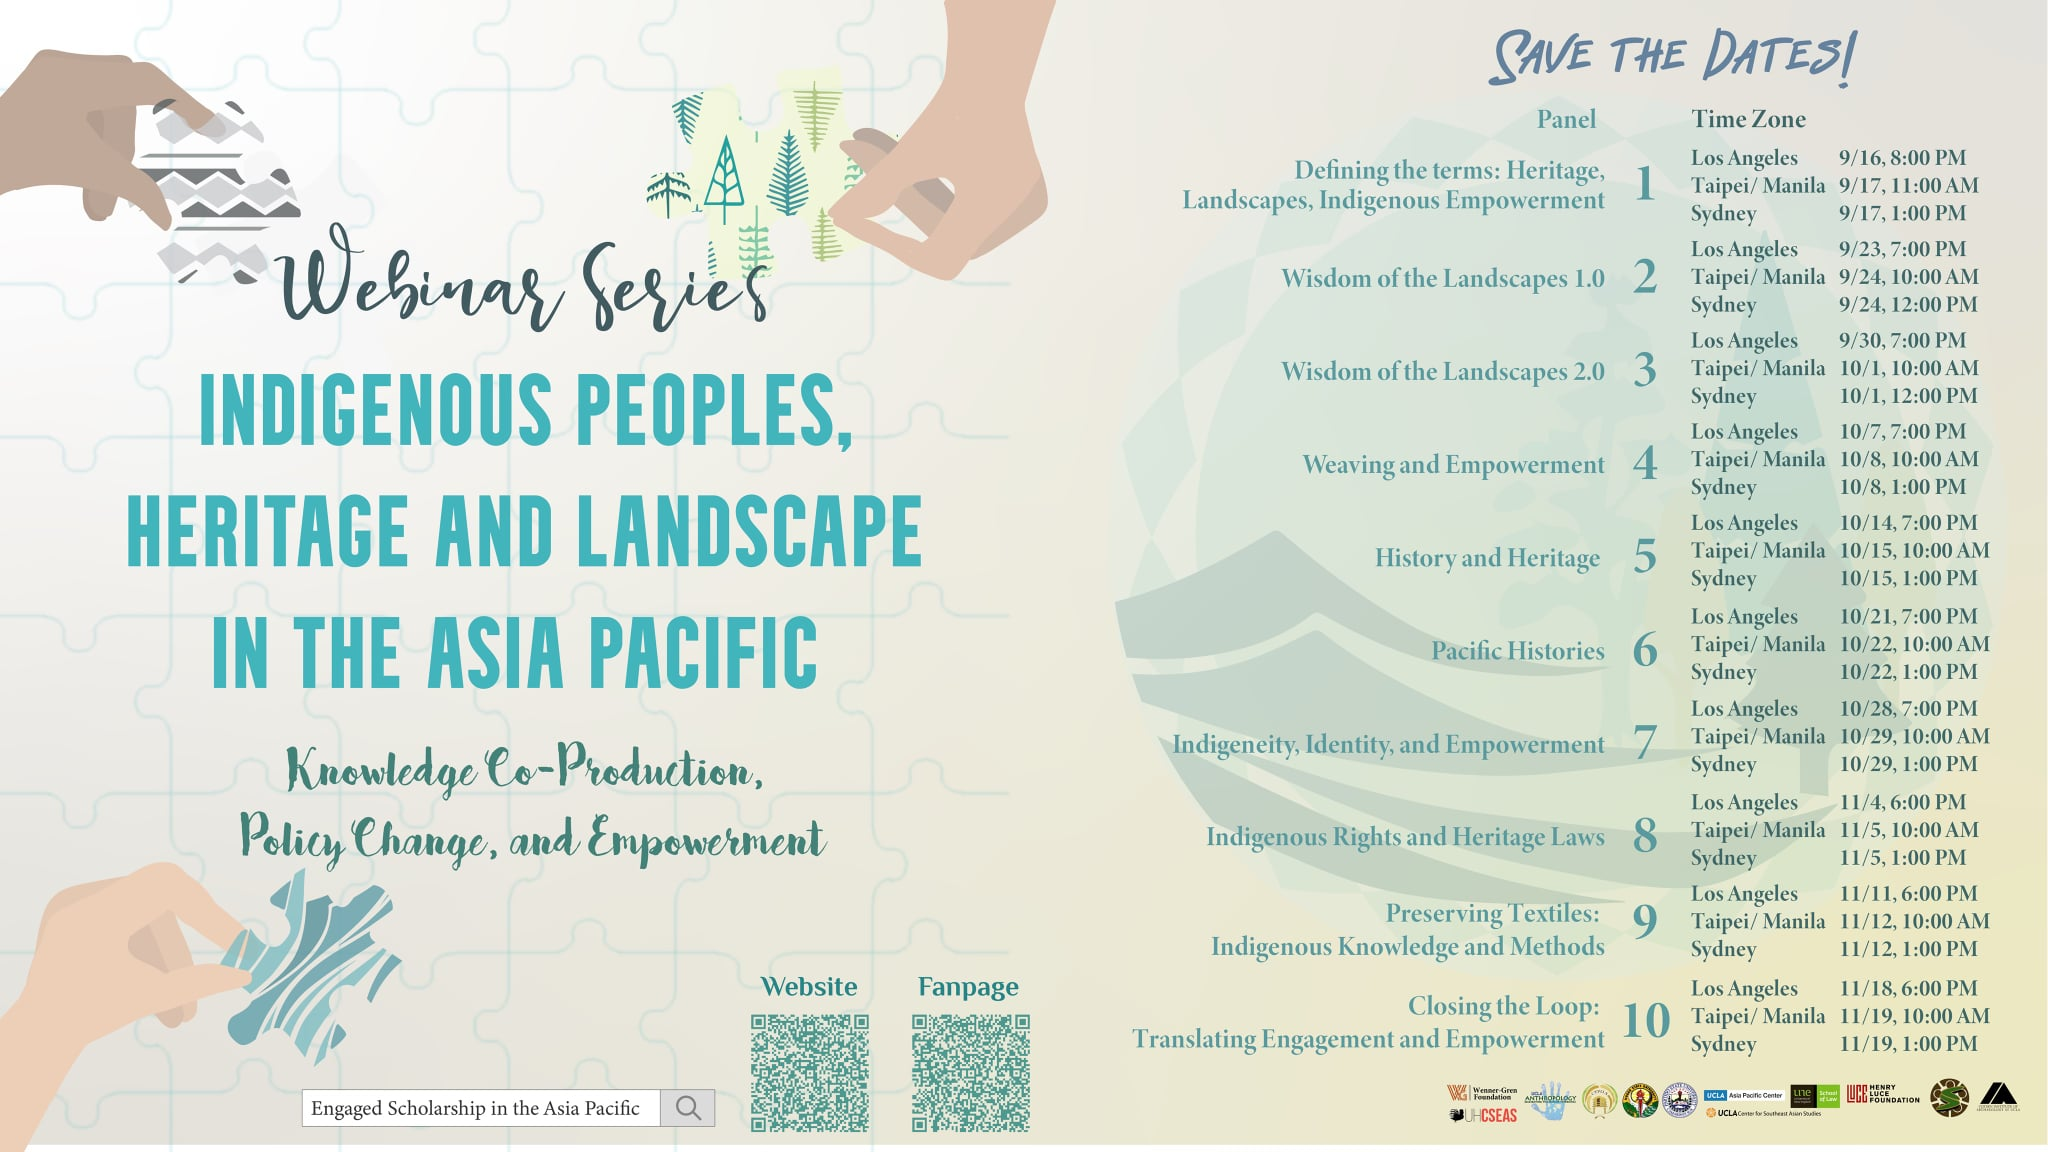 Webinar Series: Indigenous Peoples, Heritage and Landscape in the Asia Pacific: Knowledge Co-Production, Policy Change, and Empowerment's picture